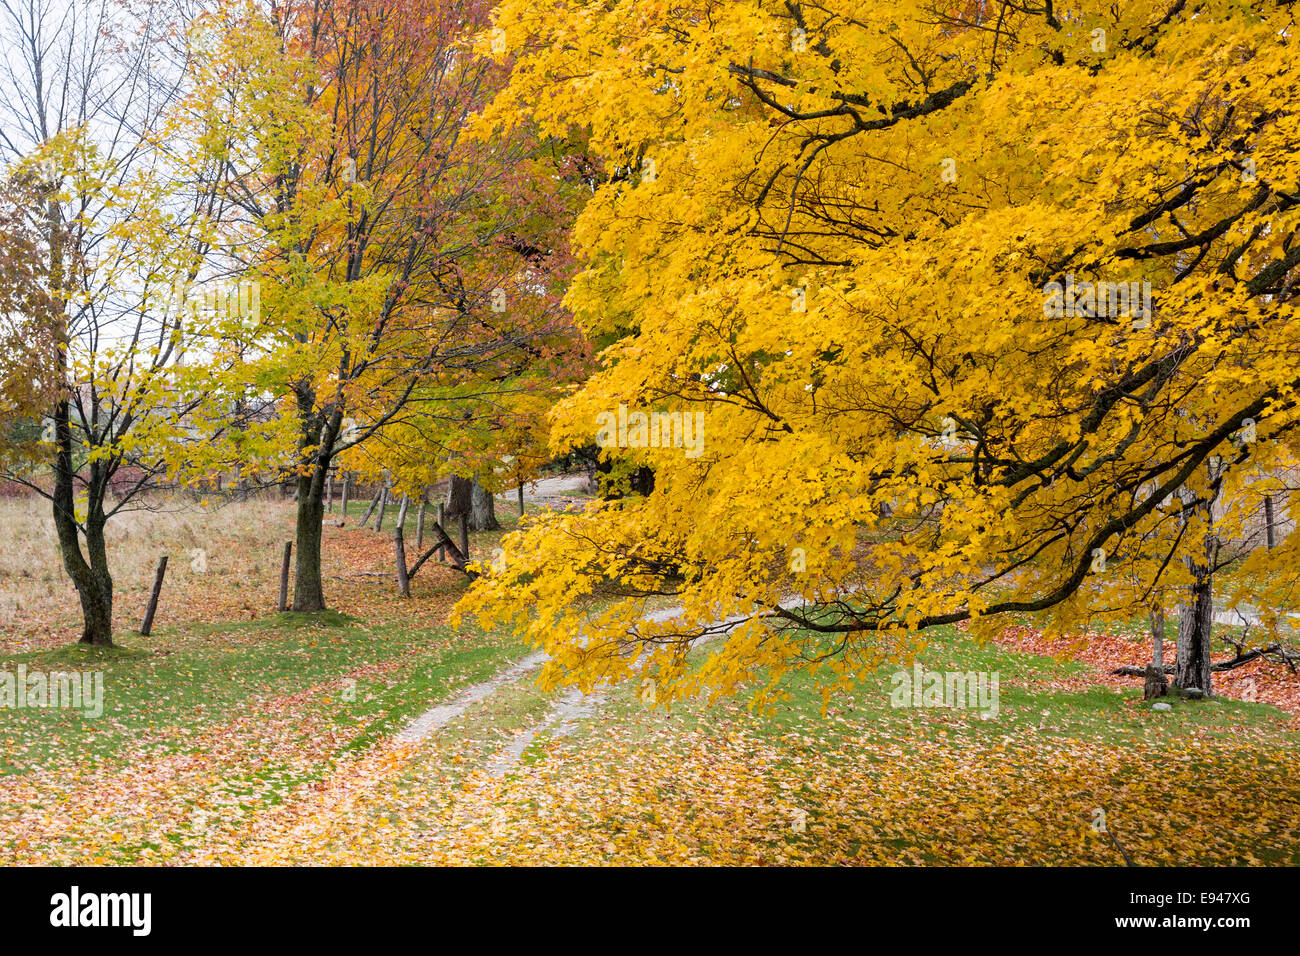 farm-driveway-with-colourful-maple-trees